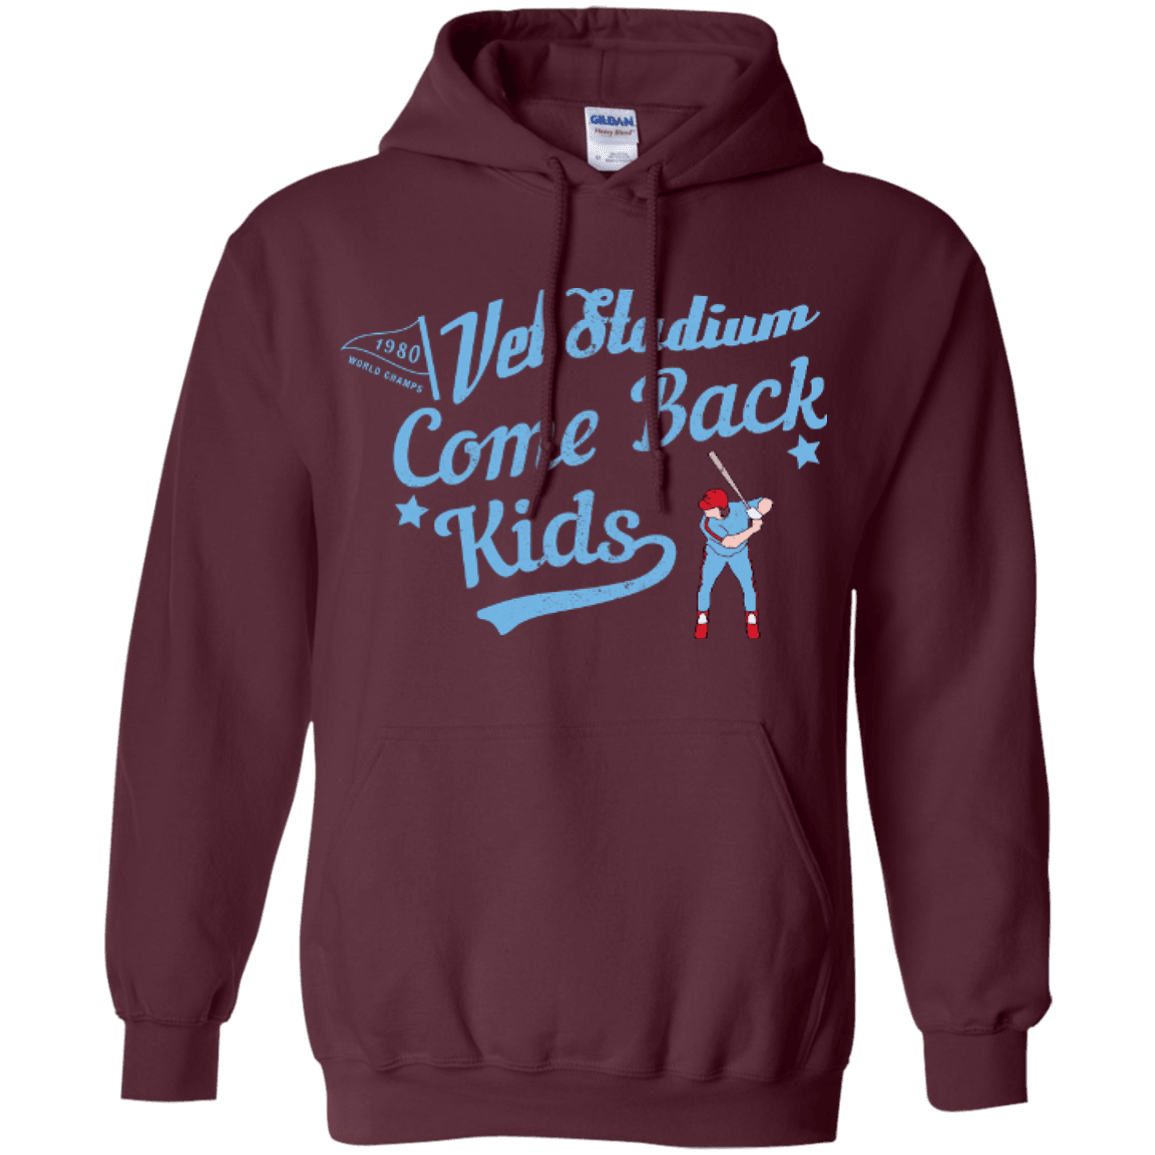 1980 Phillies Inspired Pullover Hoodie - Generation T